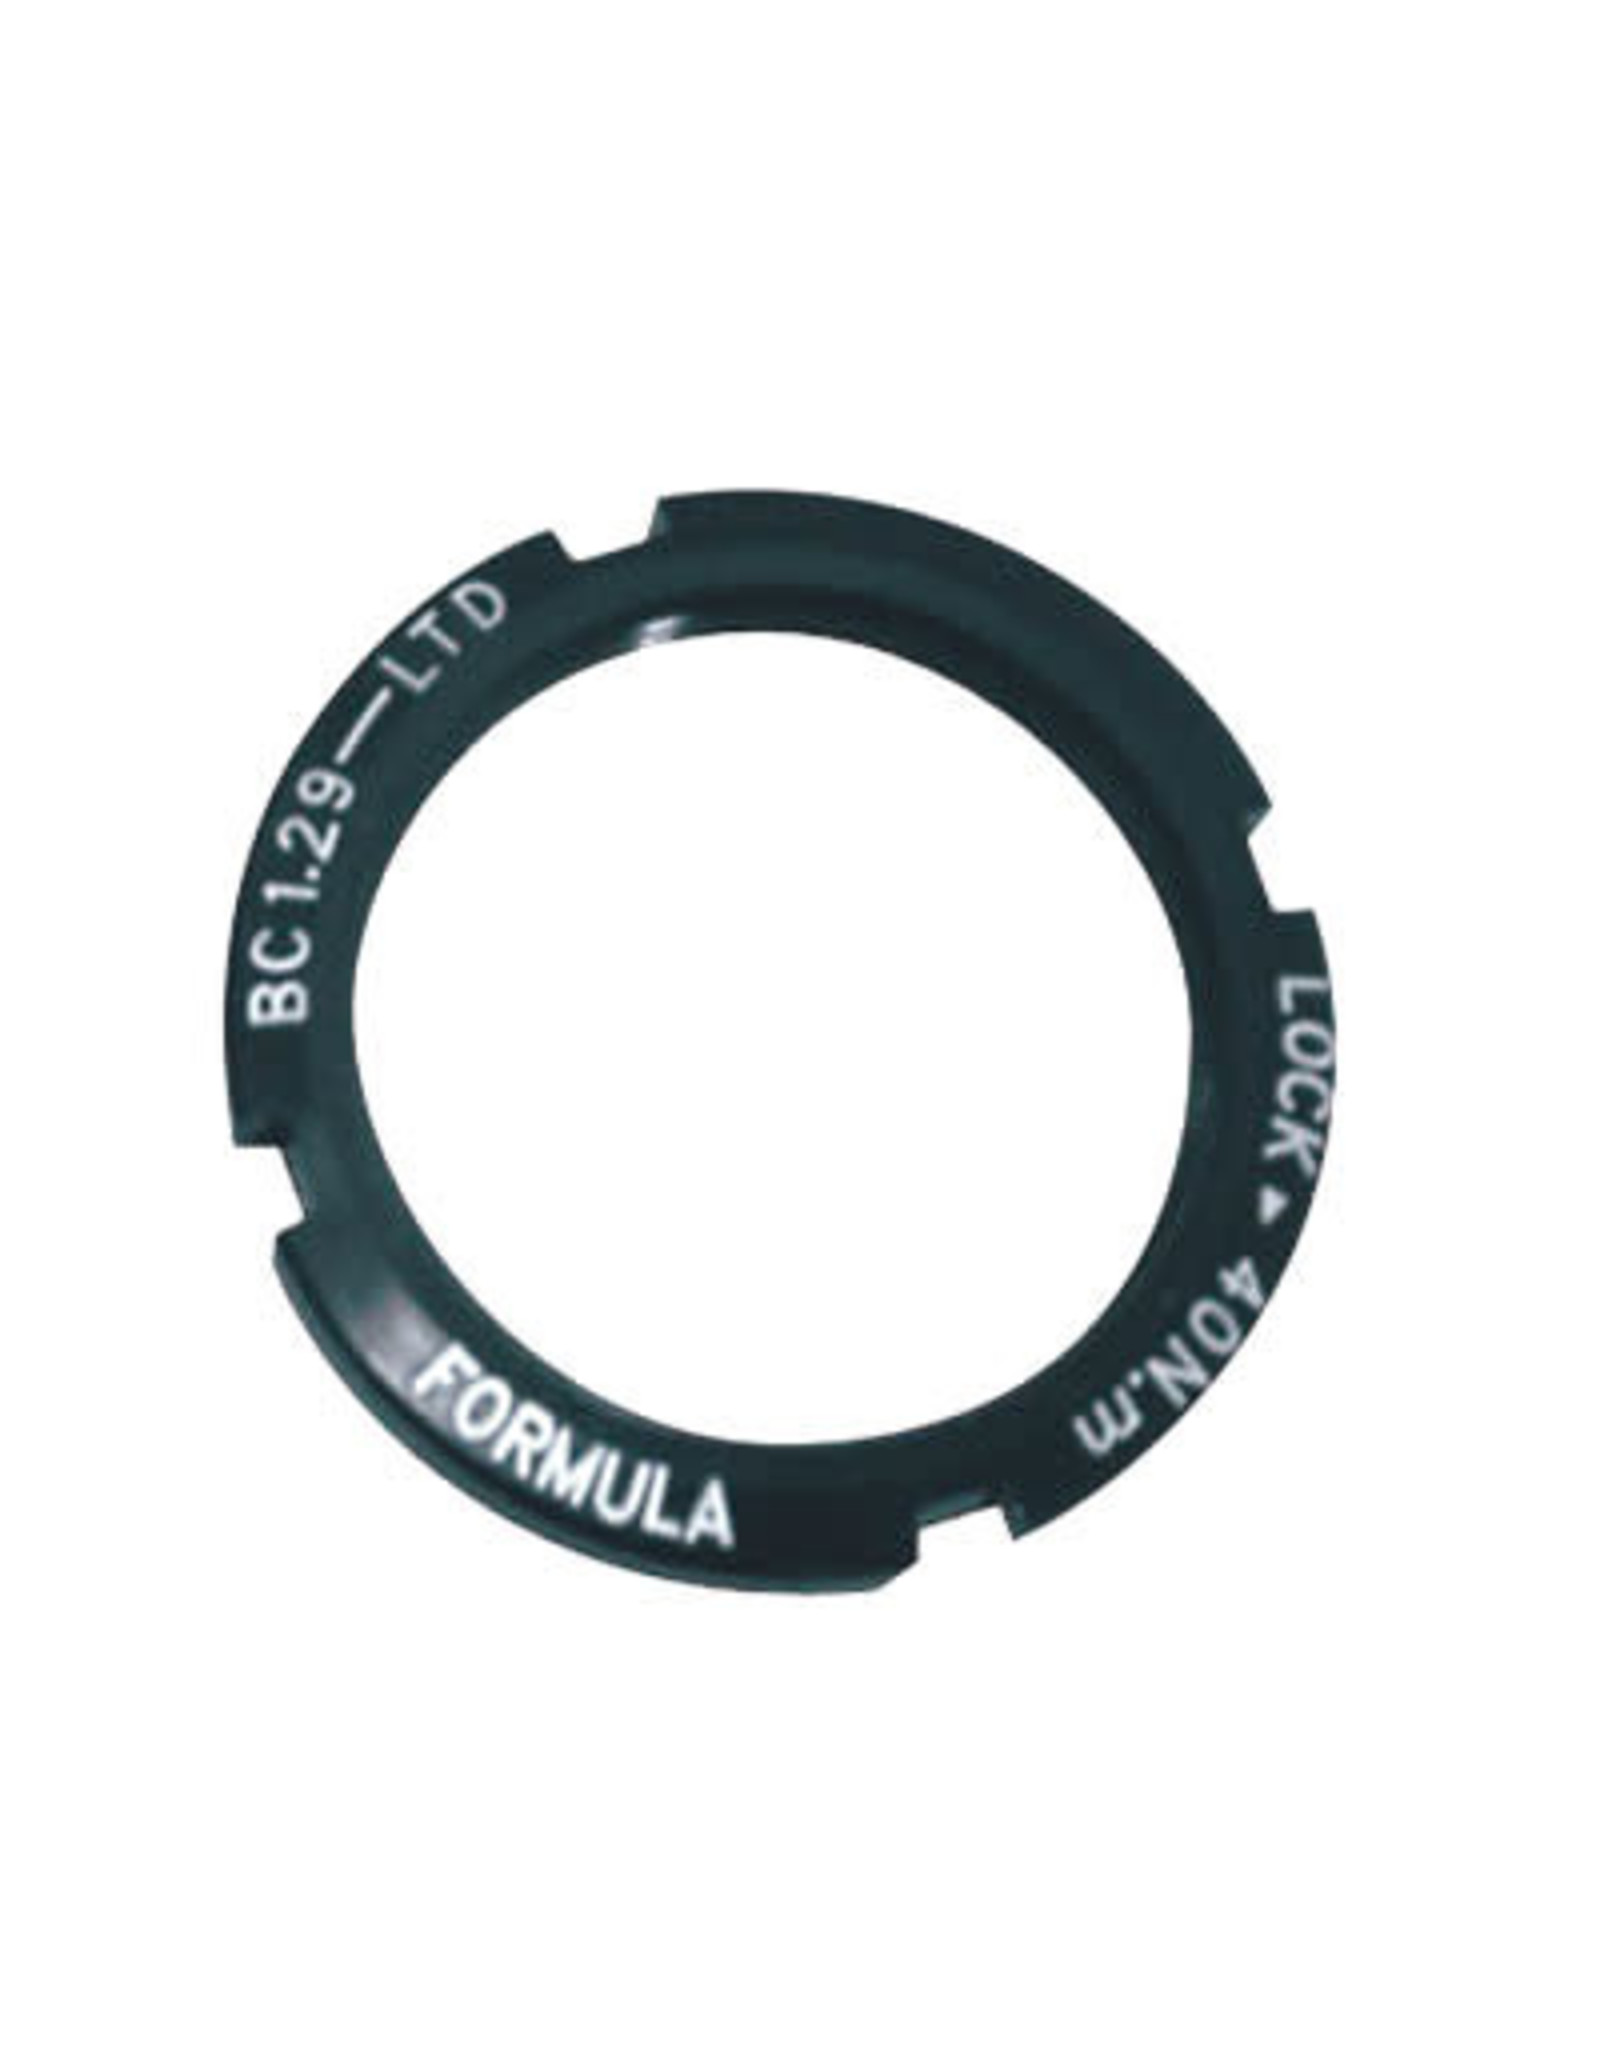 Formula Locking ring BC 1.2